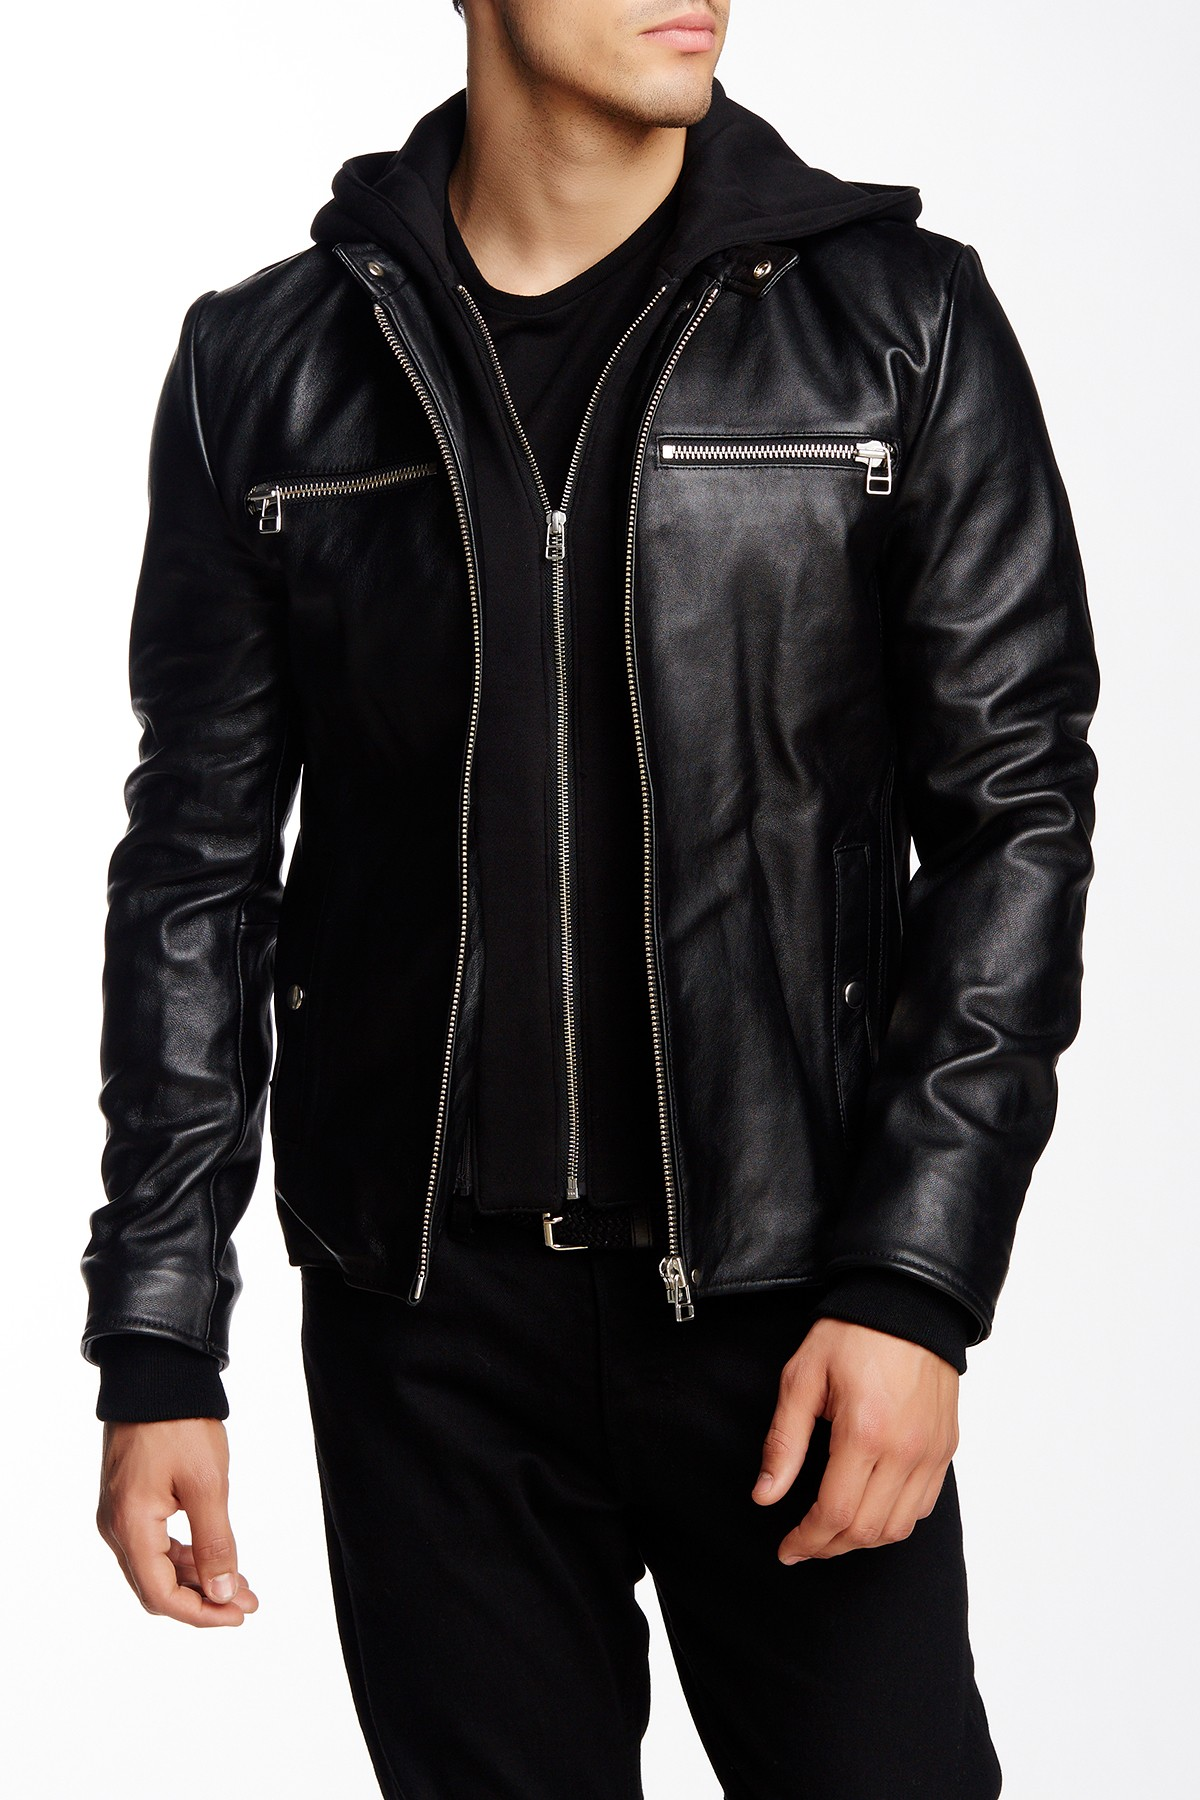 0599a40c2 Men Black Detachable Fabric Hooded Leather Jacket, Biker Leather Jacket Men  from Rangoli Collection